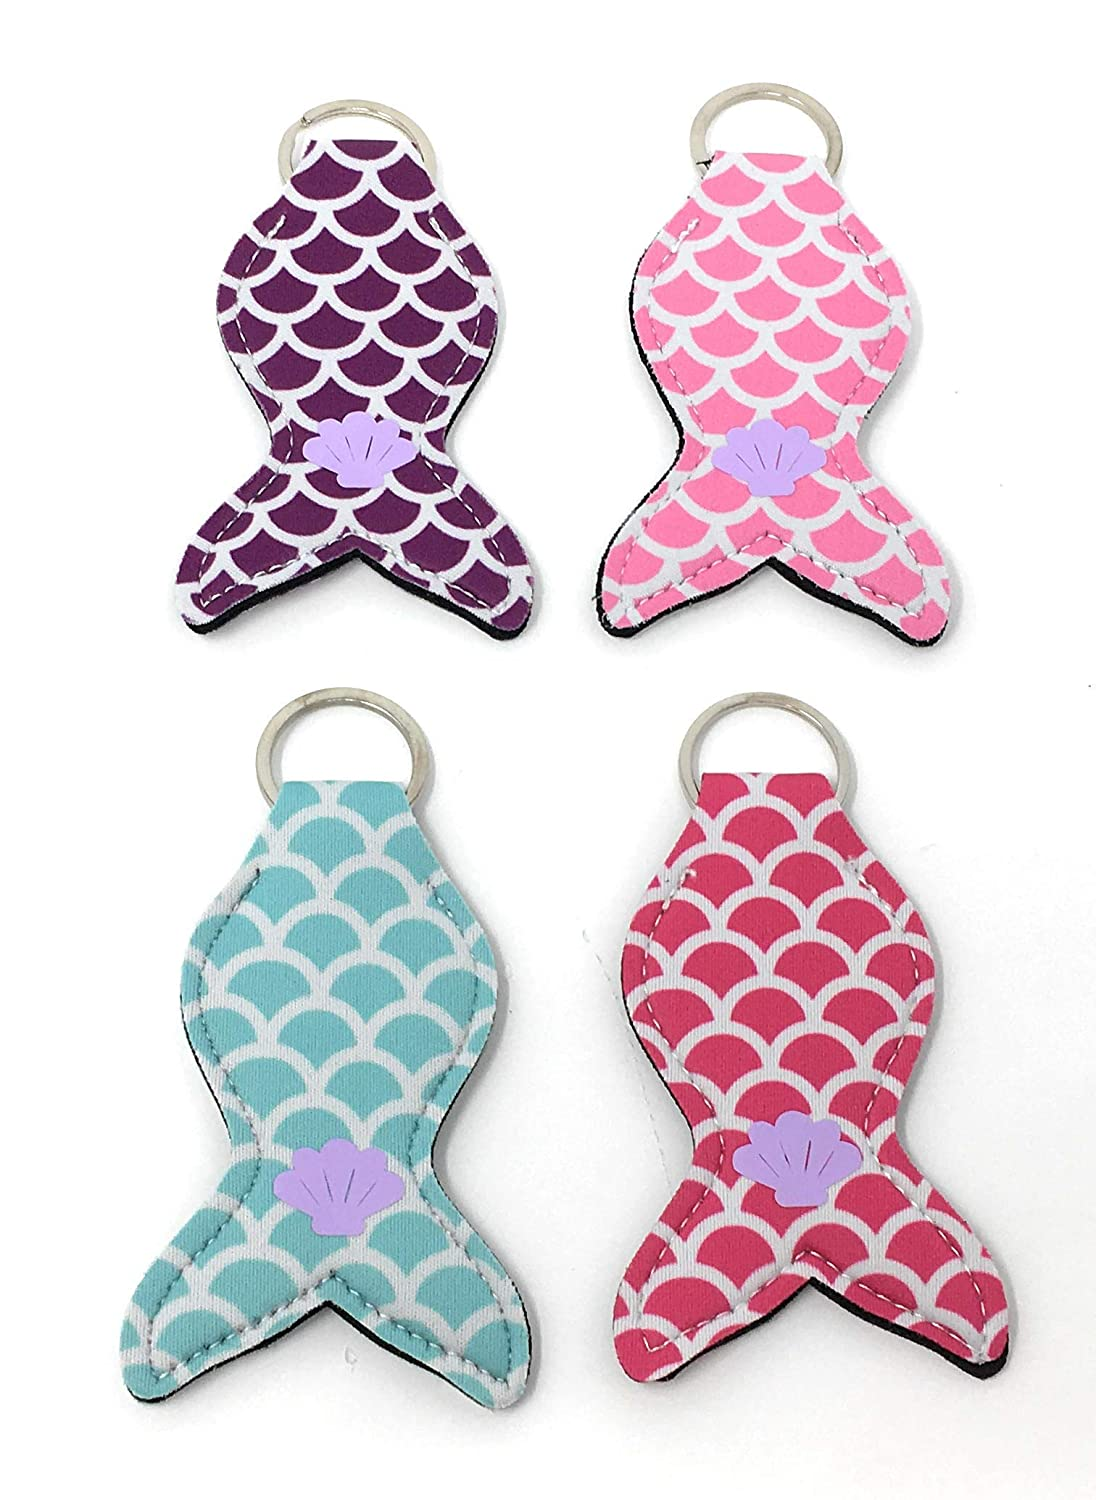 Pink Mermaid No Tail Chapstick Holder Party favor Neoprene Keychain Wholesale